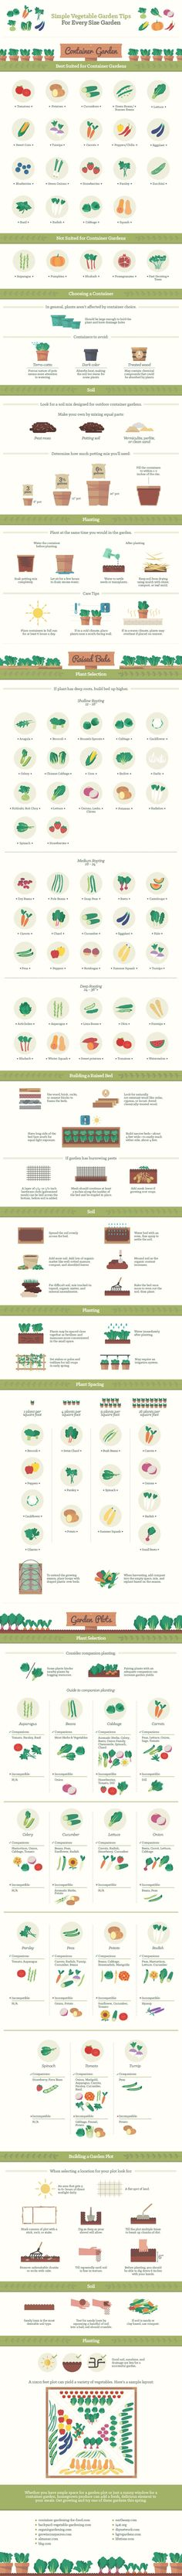 Since the dawn of civilization, humanity has been growing food to stave off hunger. While most of us go to a store for this now, growing your own food can be as rewarding as it is delicious. If you're not sure where to start, this chart will give you all the essential info.